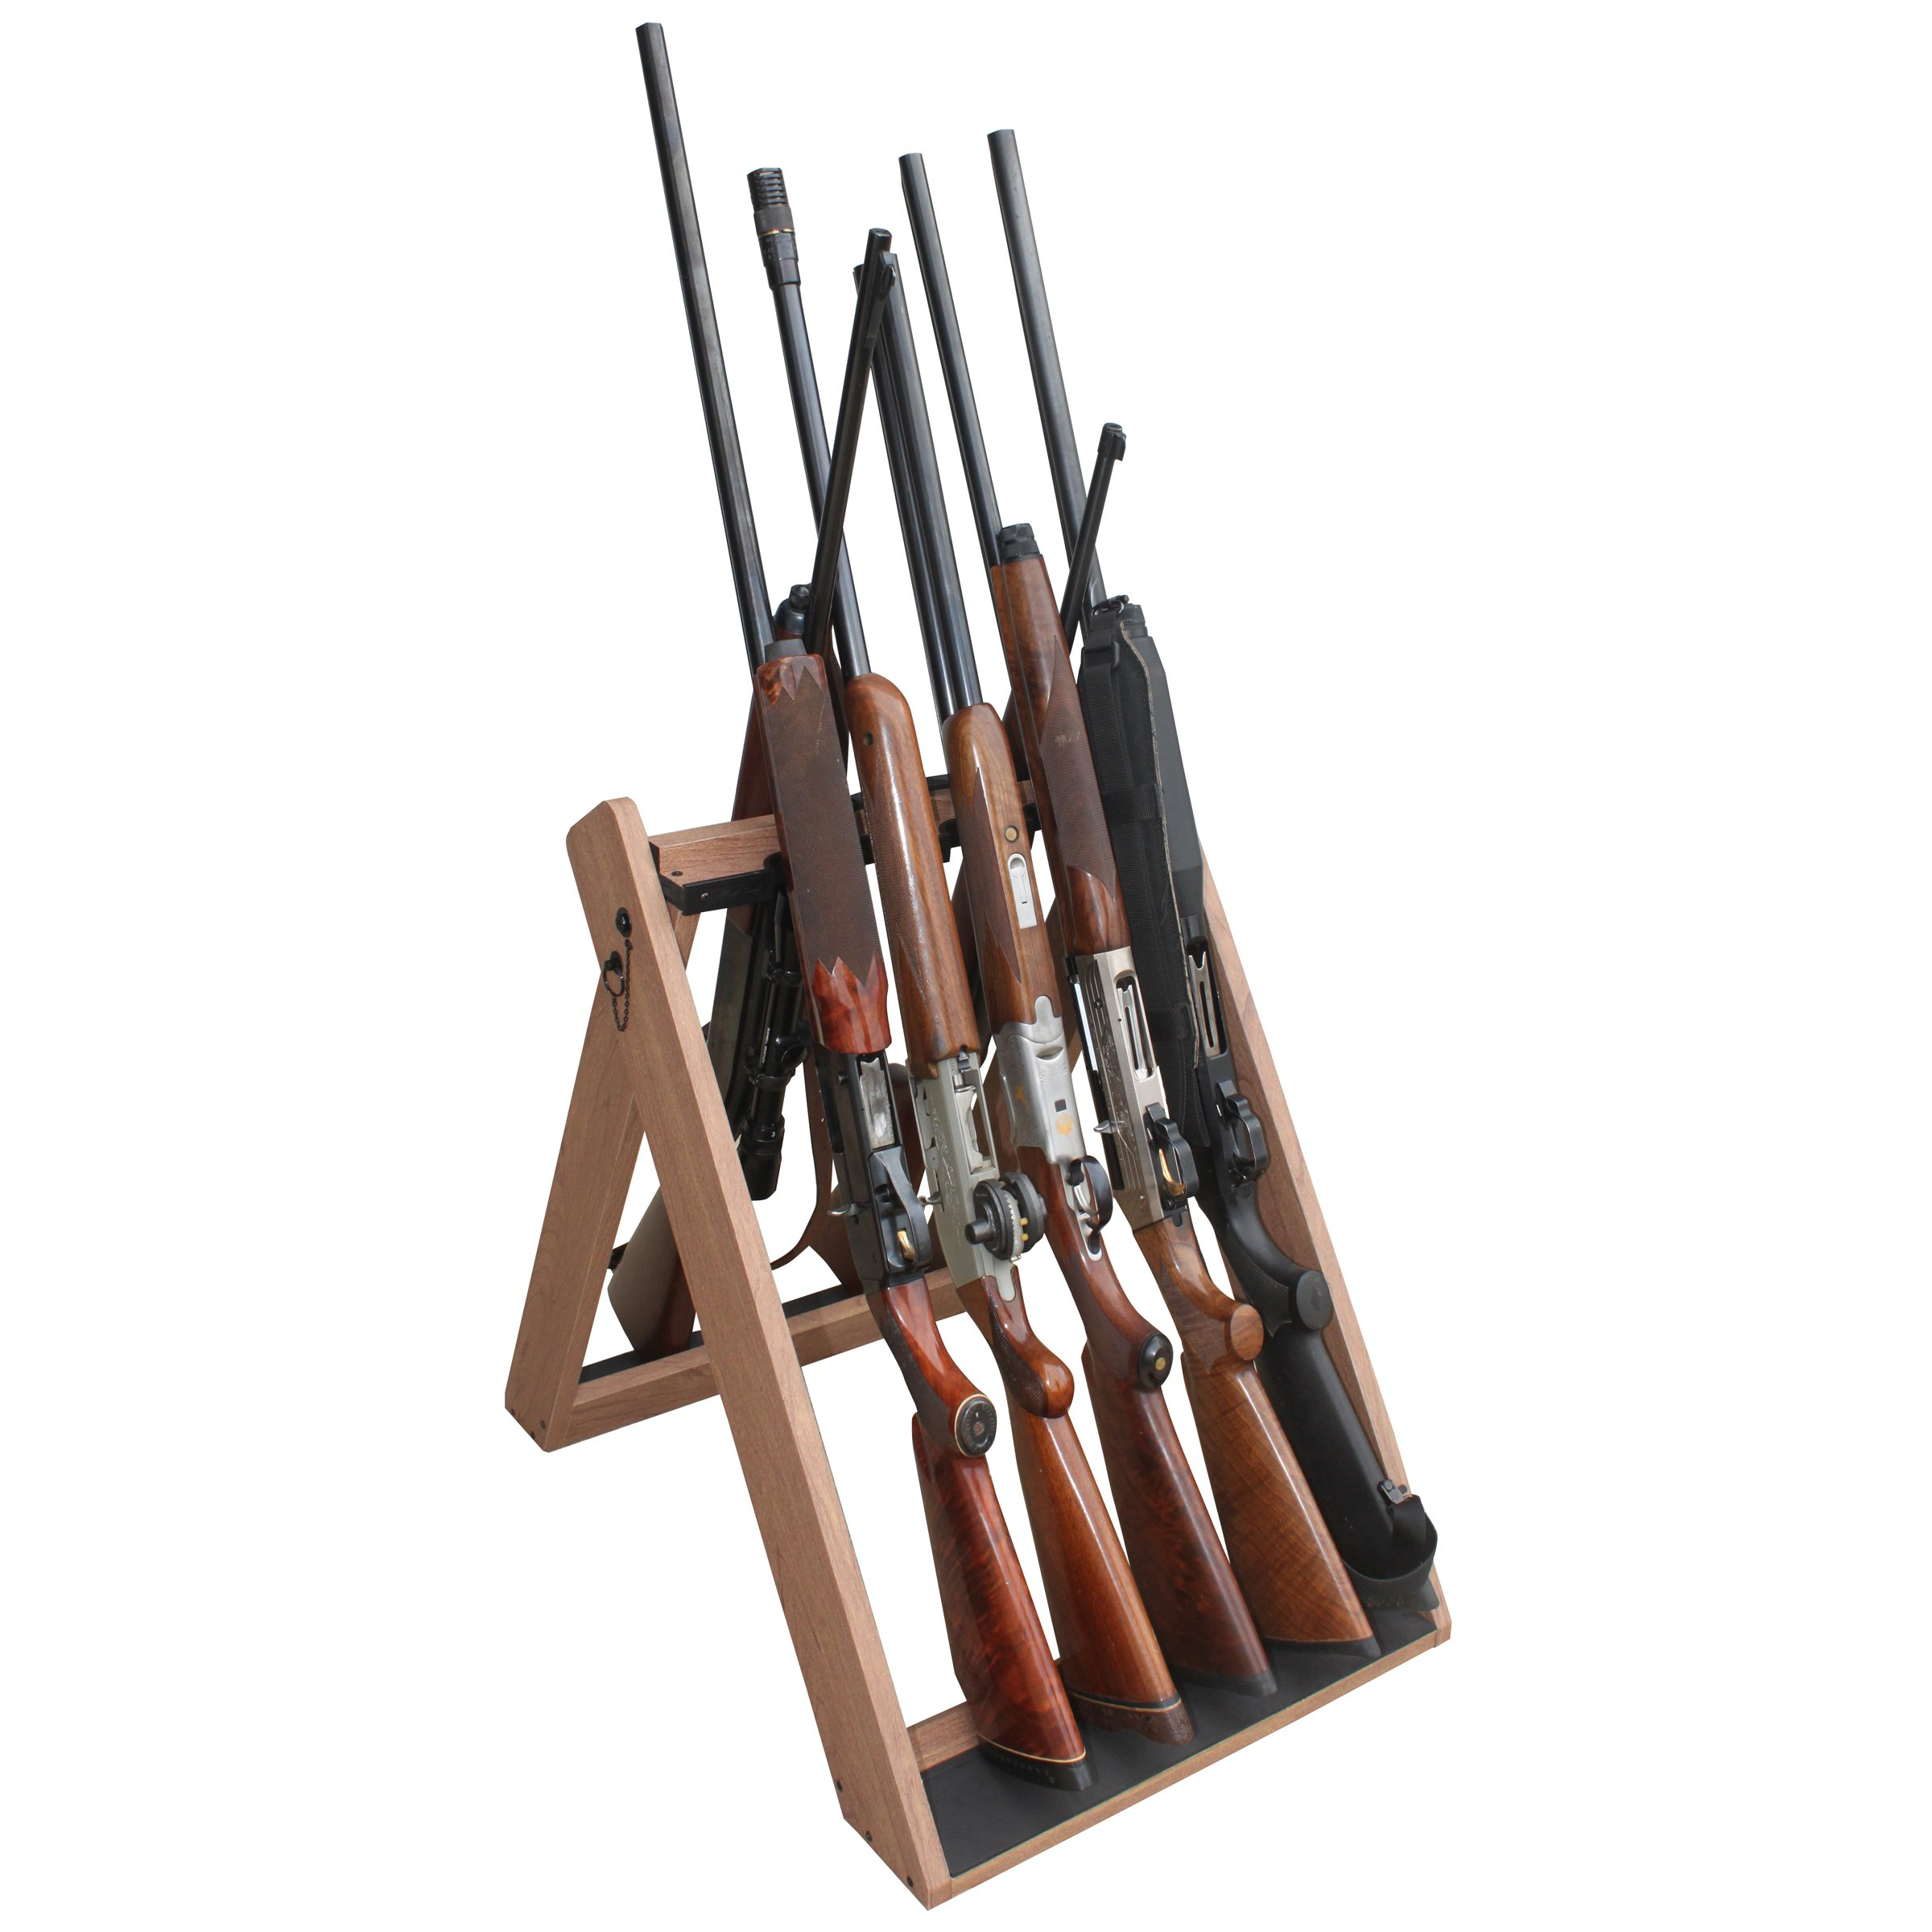 Rush Creek Creations Deer Camp Portable Folding 10 Gun Storage Rack - Handcrafted Weather Proof Material - Easy to Assembly by Rush Creek Creations